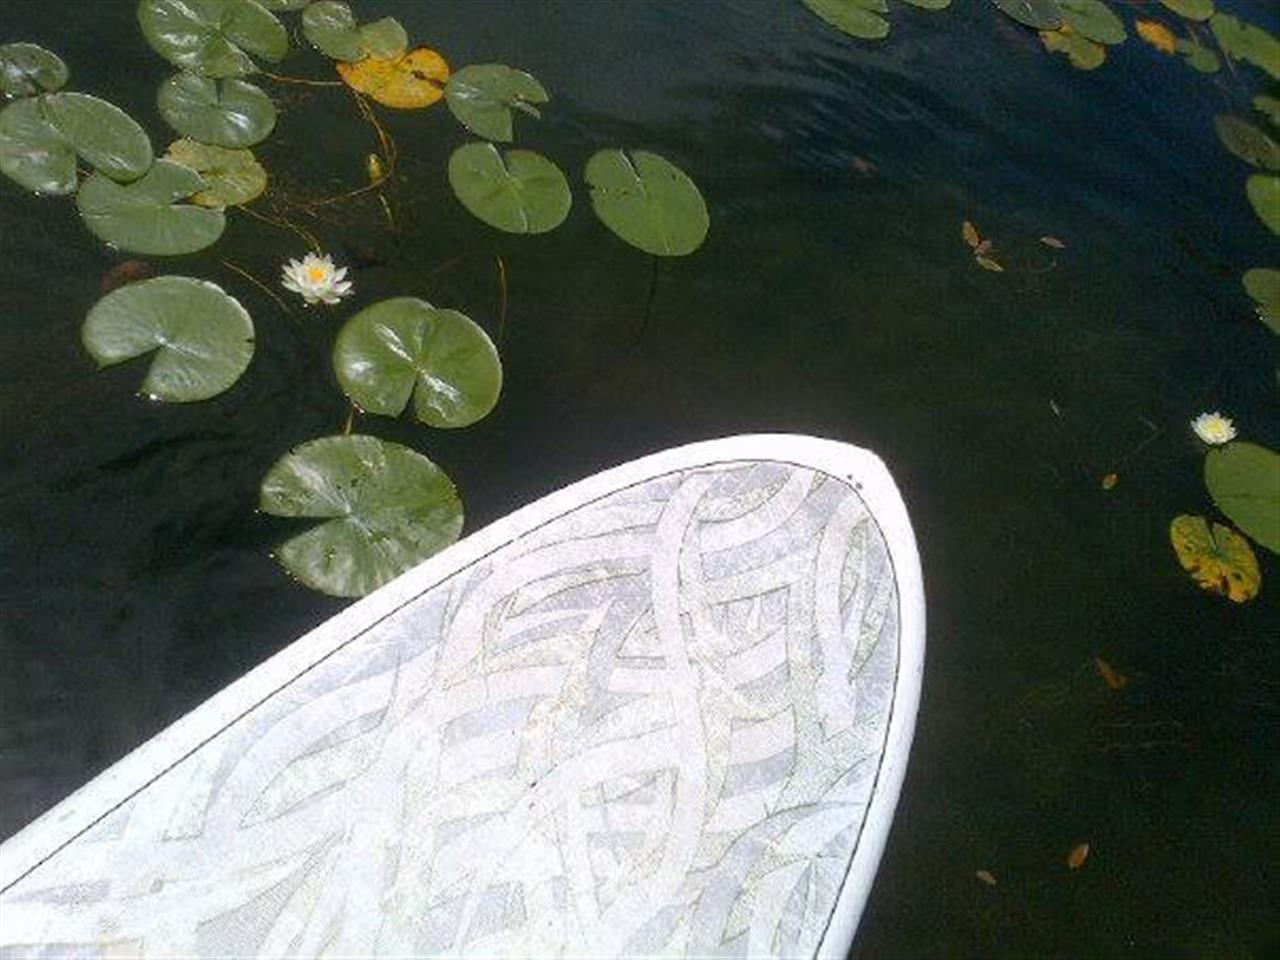 Paddleboarding on Orchard Lake ~ Orchard Lake, Michigan #LeadingRElocal #OrchardLake #Michigan